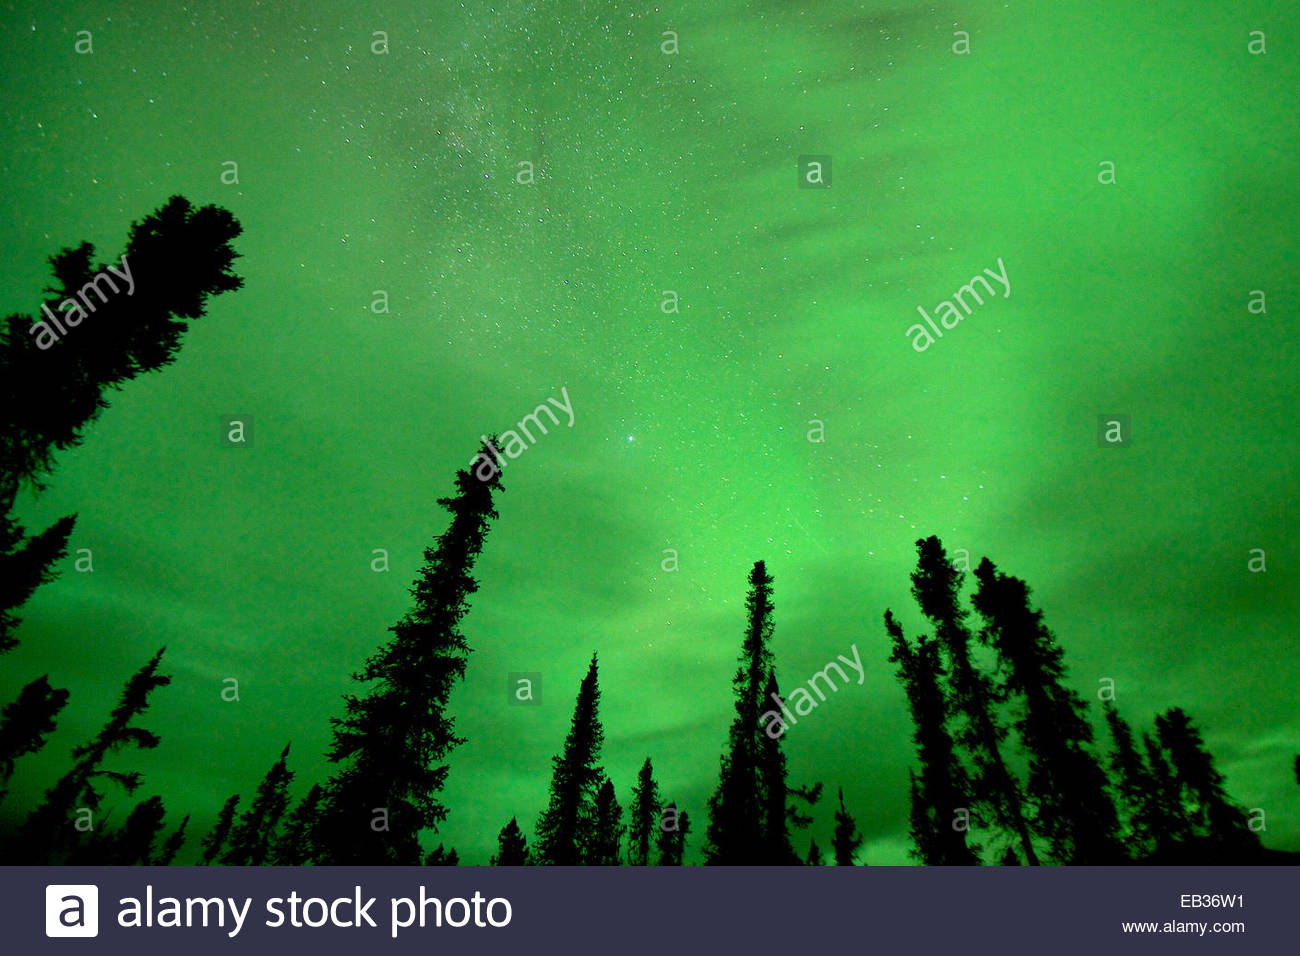 The clouds turns green as the lights happen above them. Stock Photo